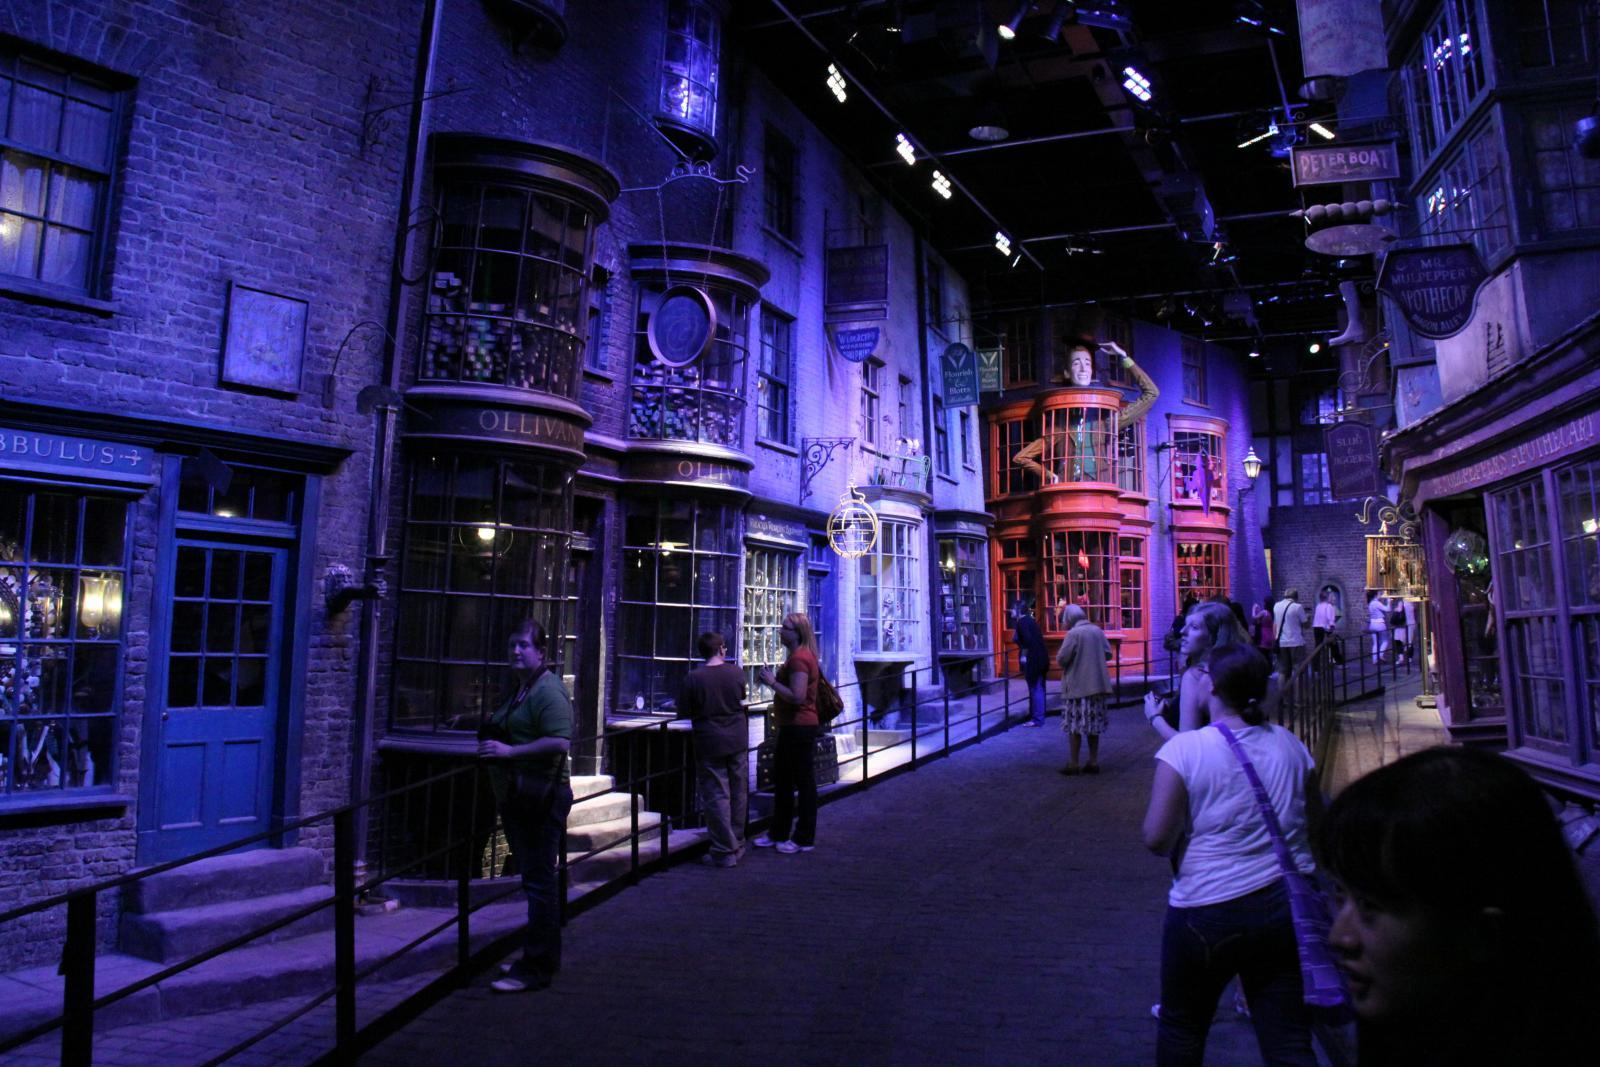 Visitors enjoy the Diagon Alley film set at the Making of Harry Potter tour at Warner Bros Studios